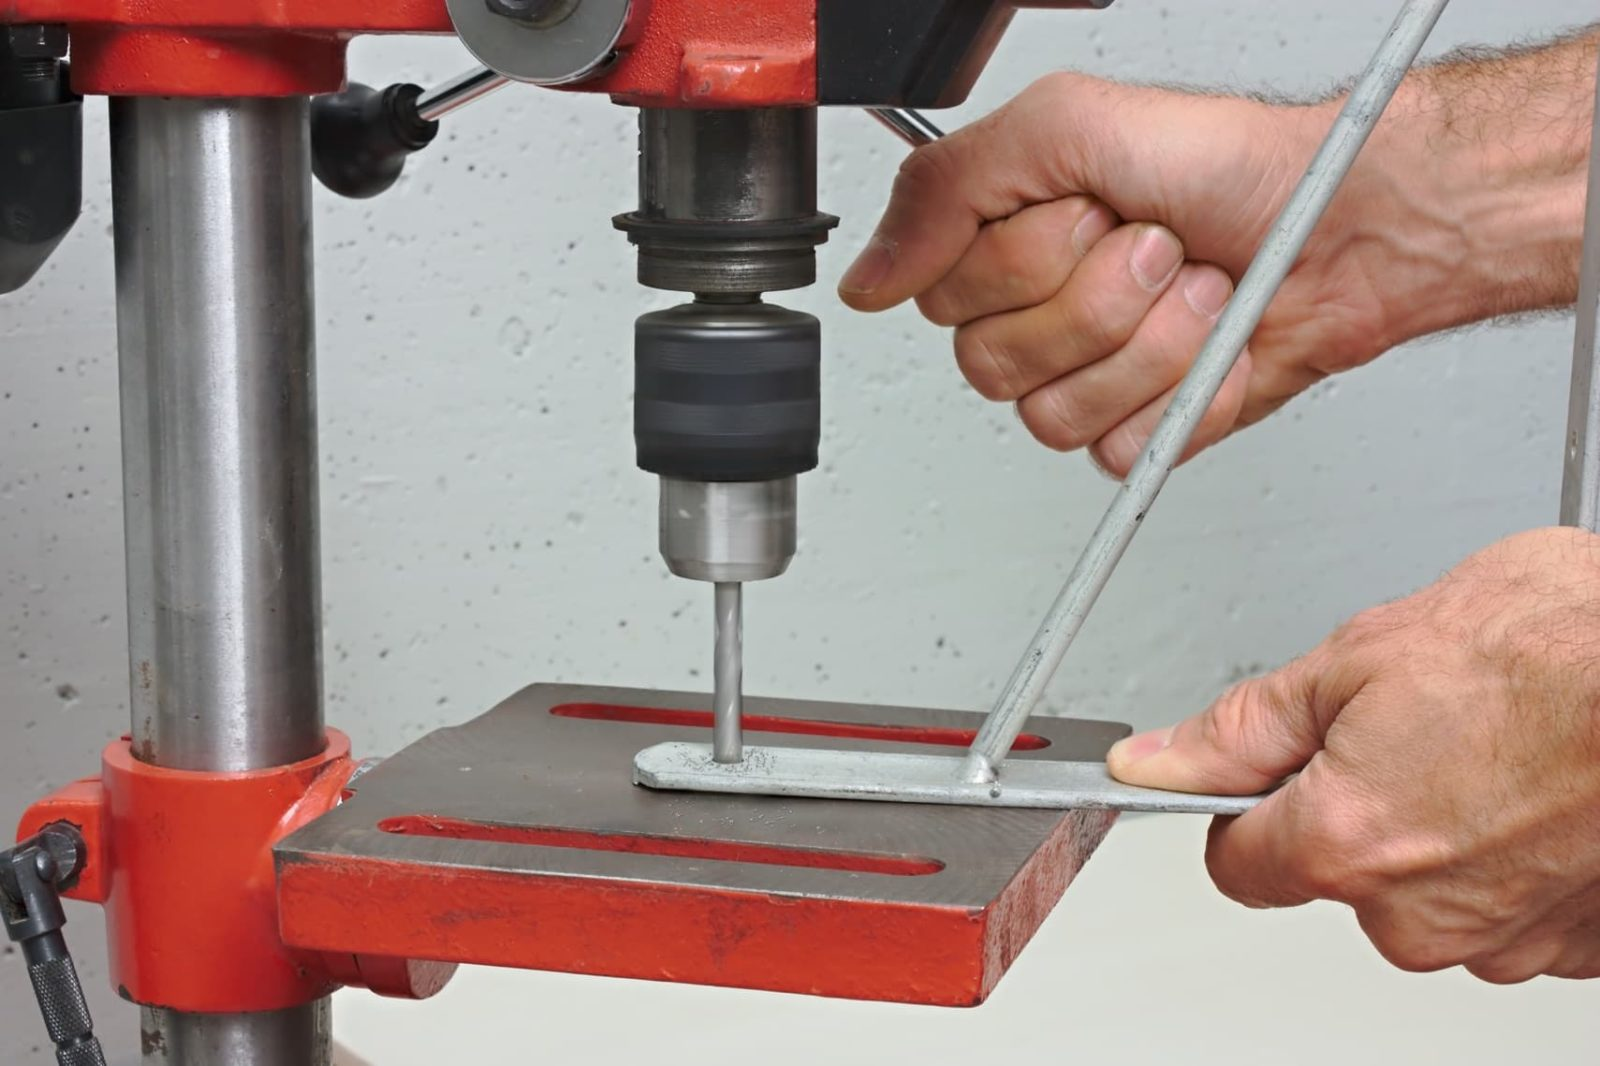 a worker drilling a hole in a metal bracket using a pillar drill